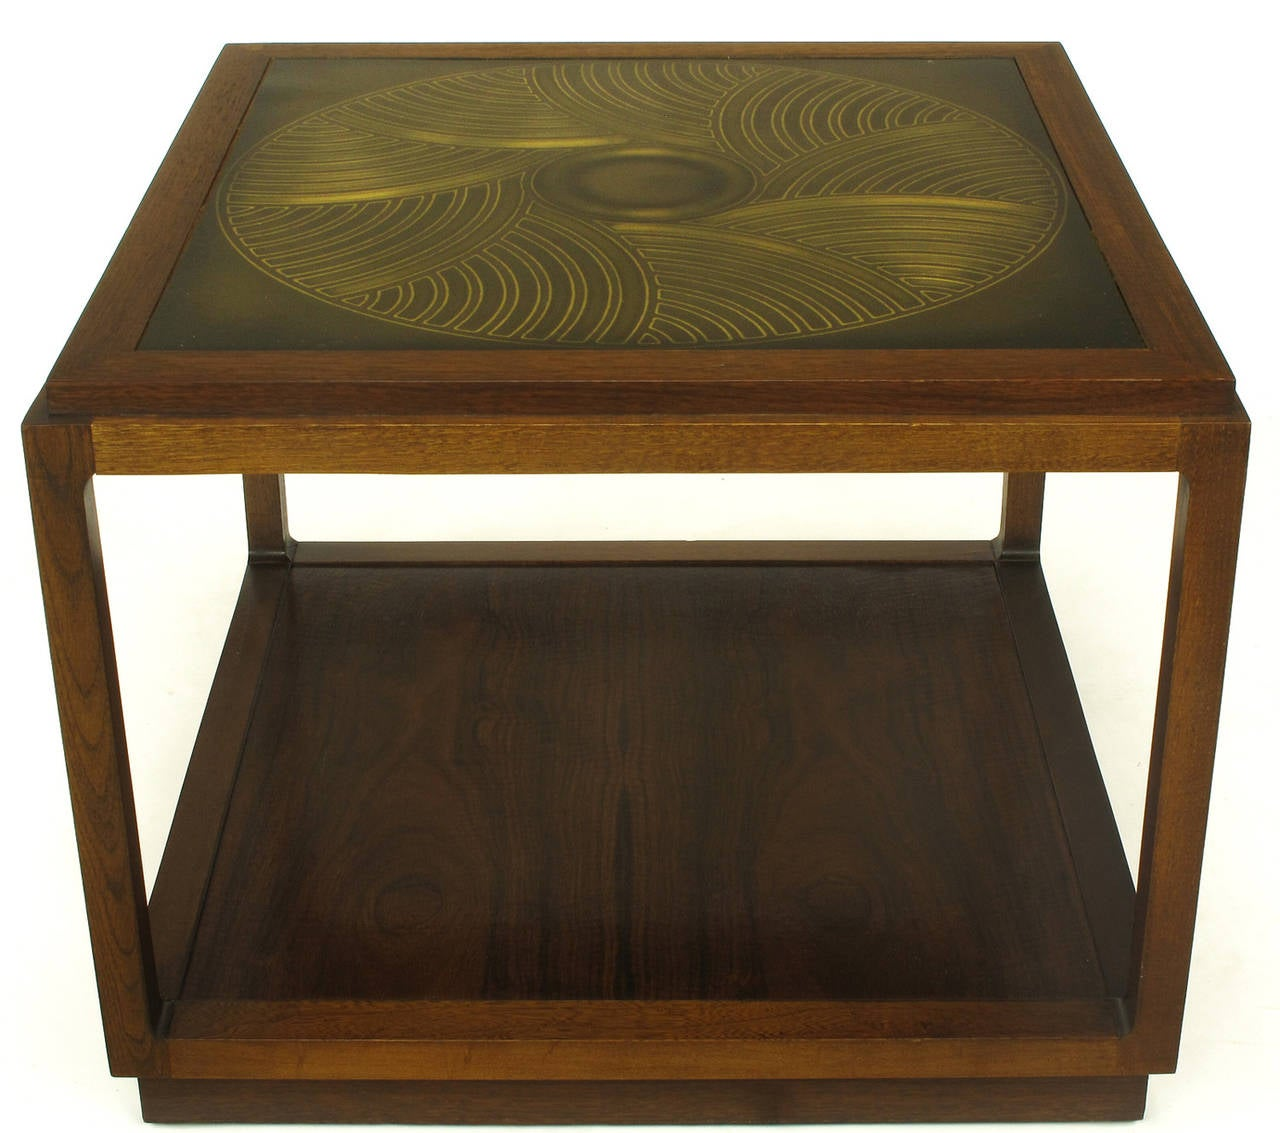 Uncommon side table from Baker Furniture's Contemporary collection, designed by Bert England. East Indian laurel wood construction with a geometrically etched brass top.